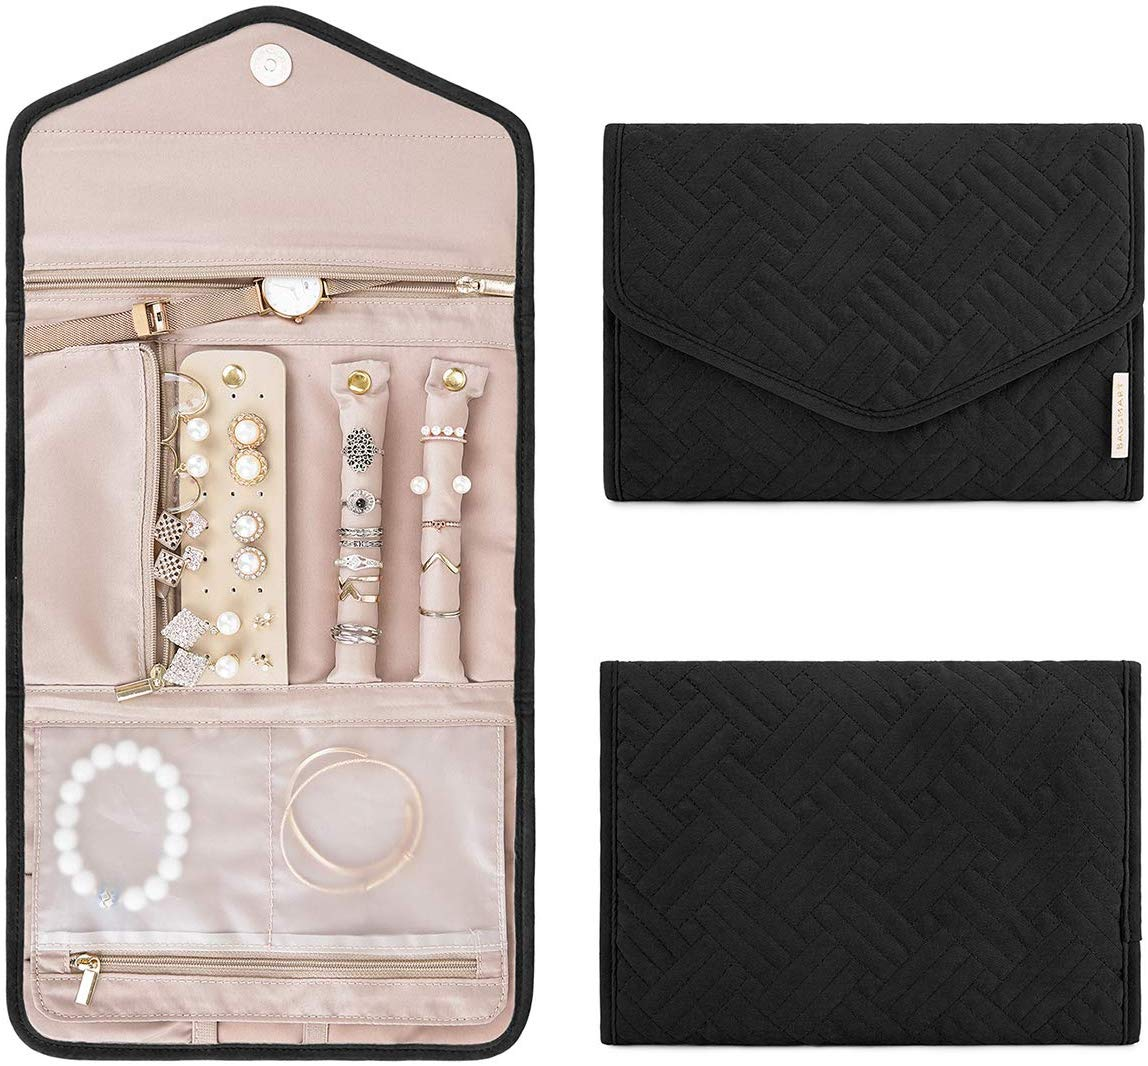 BAGSMART Roll Foldable Jewelry Case